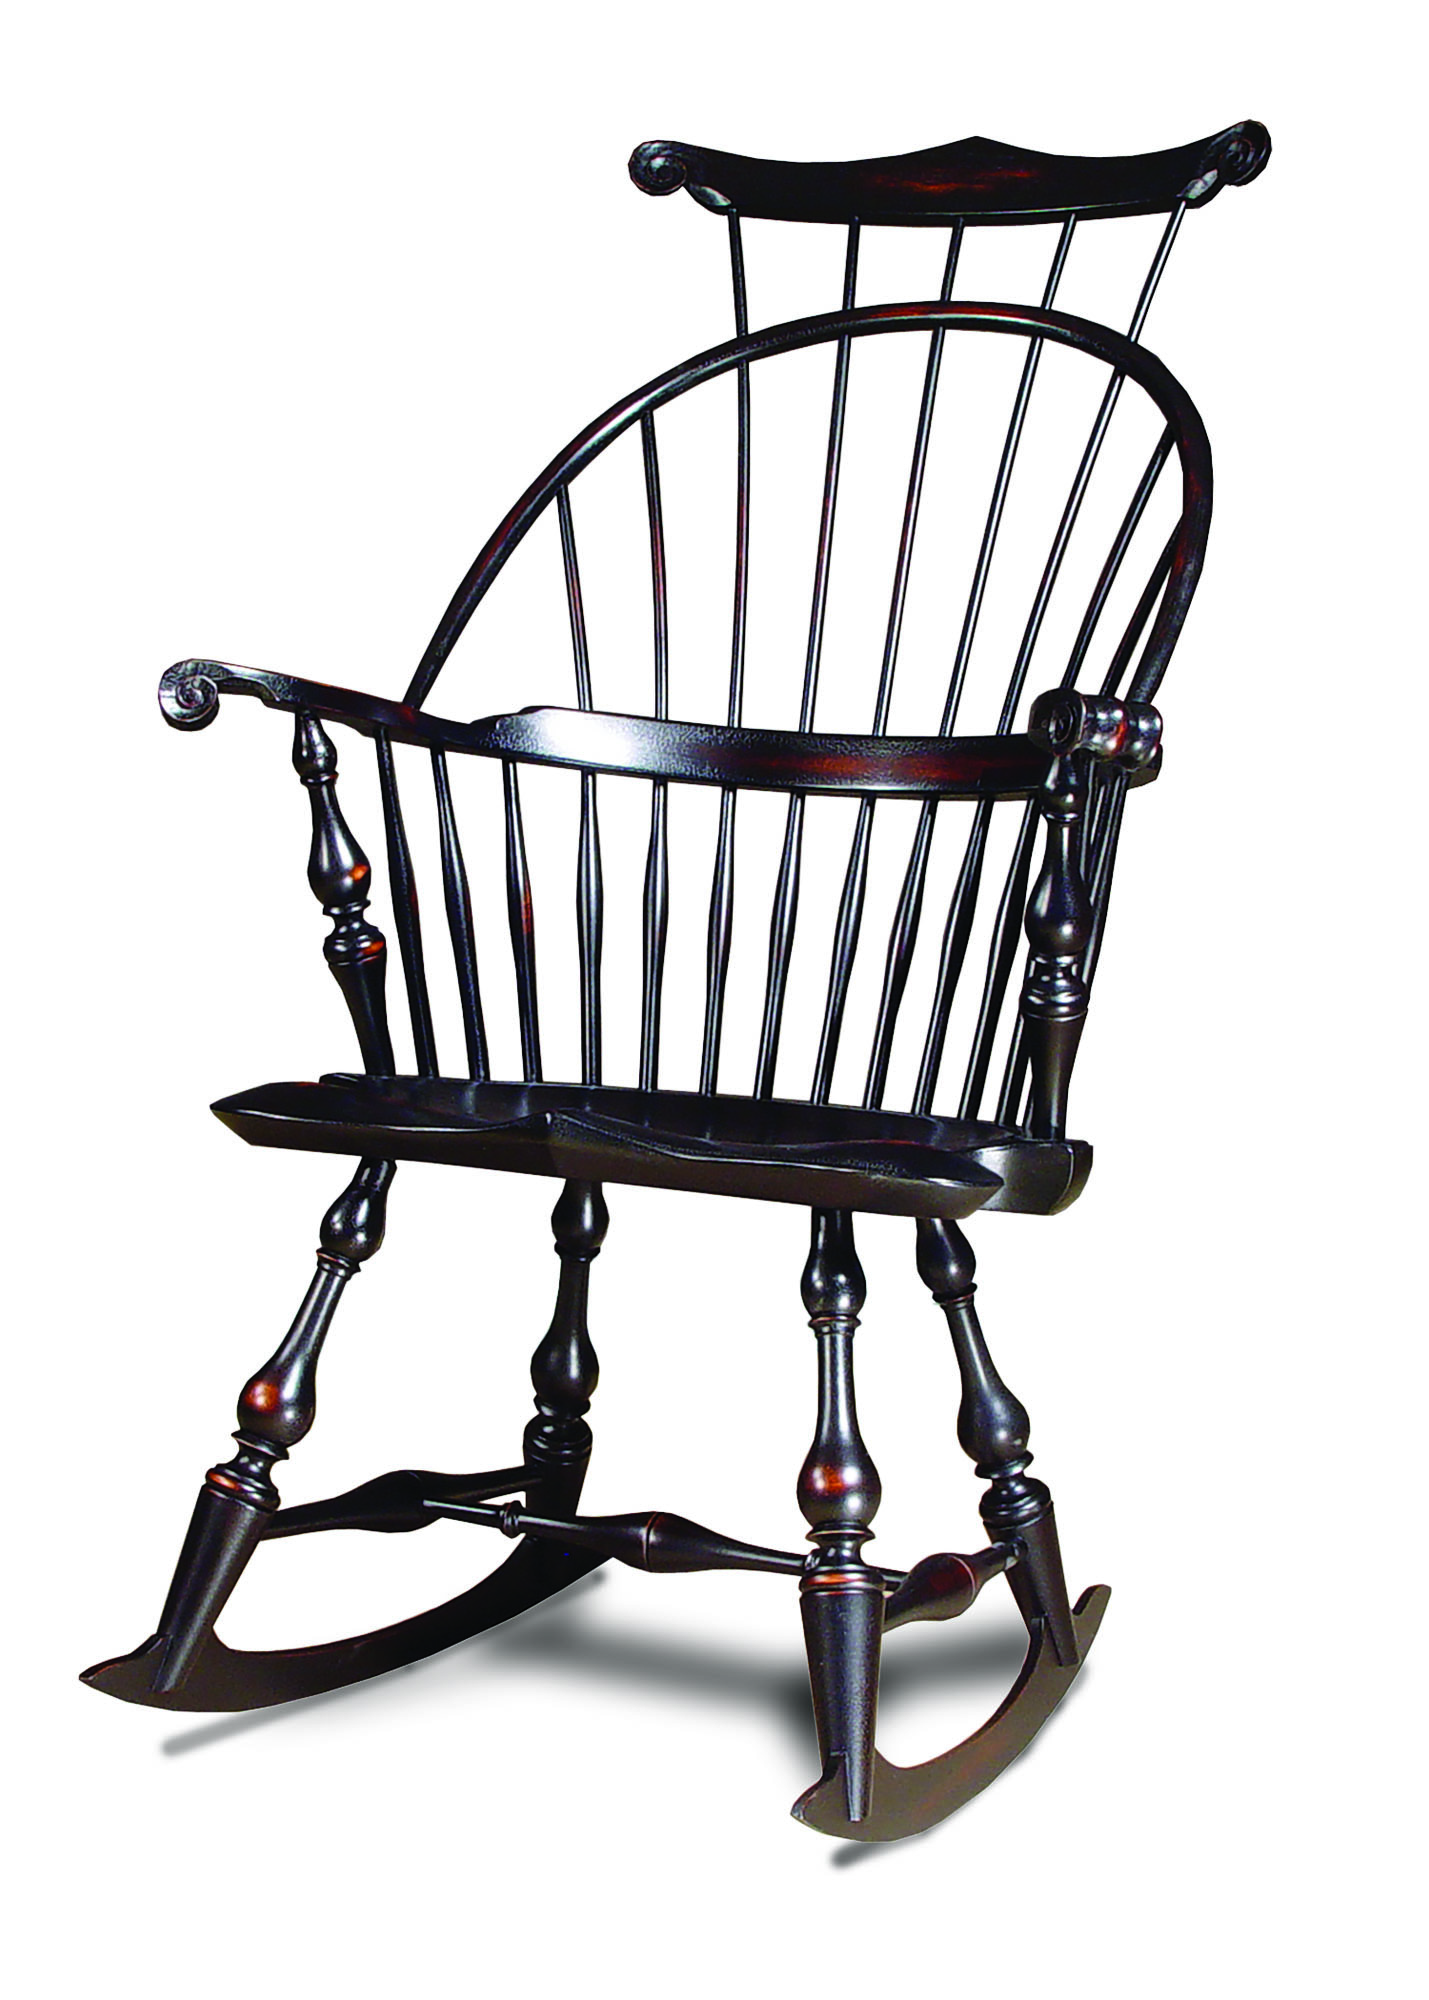 The 'Master's Rocking Chair' is based on a Windsor chair designed  years ago by D.R. Dimes himself.